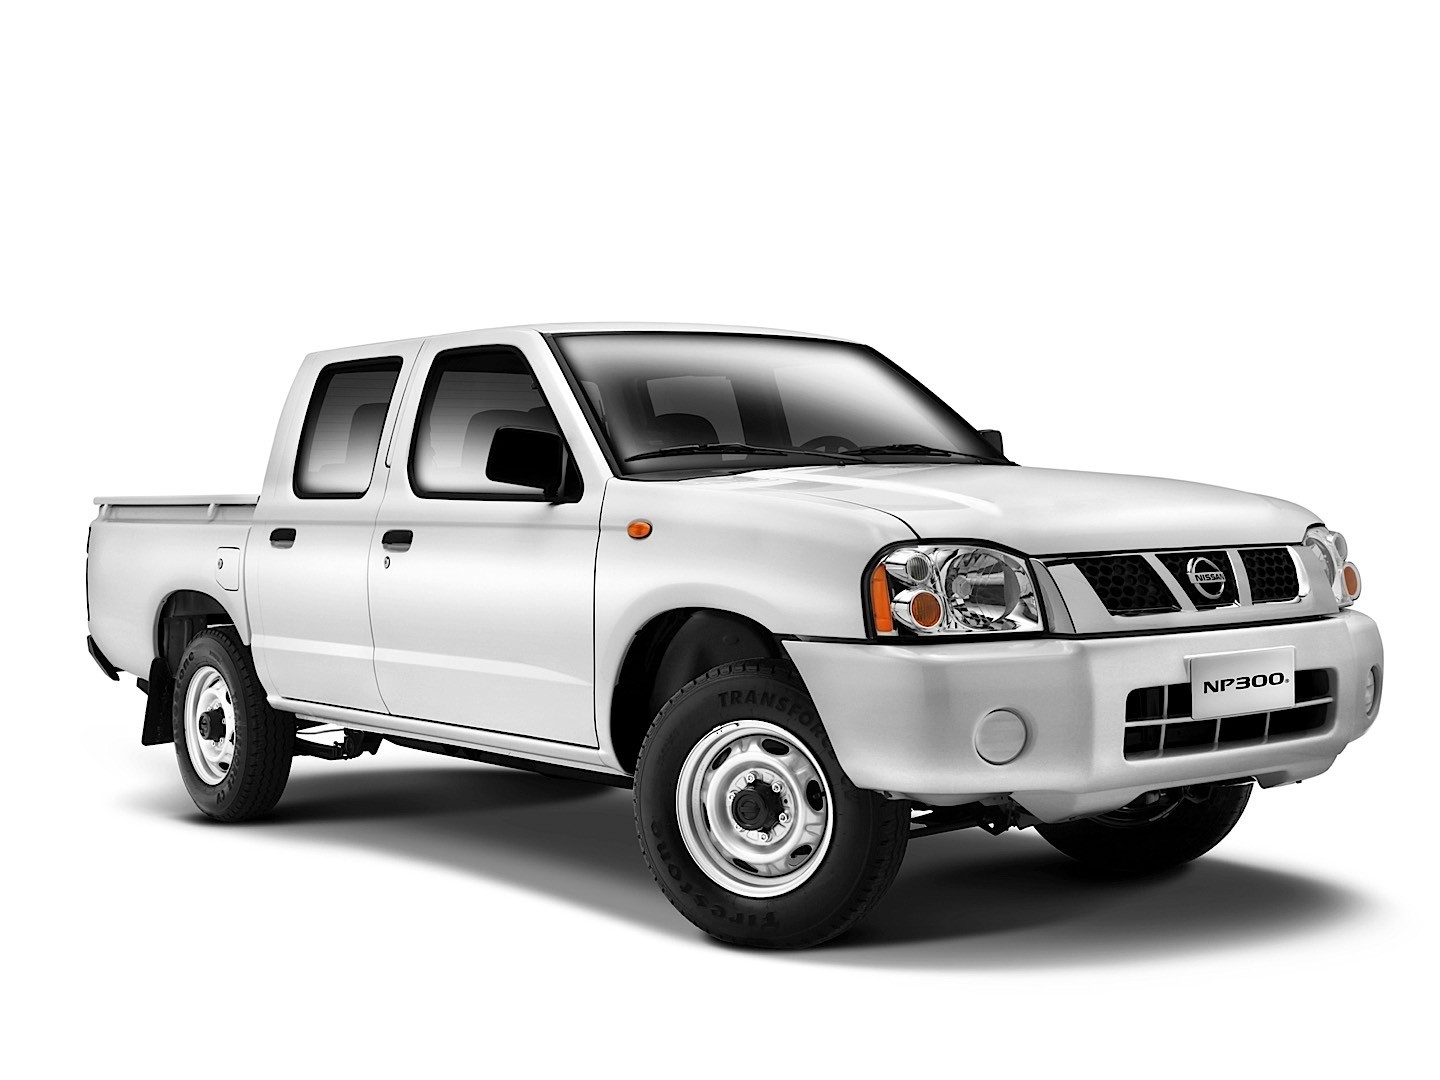 nissan np300 pickup double cab 2008 2009 2010 2011 2012 2013 2014 autoevolution. Black Bedroom Furniture Sets. Home Design Ideas